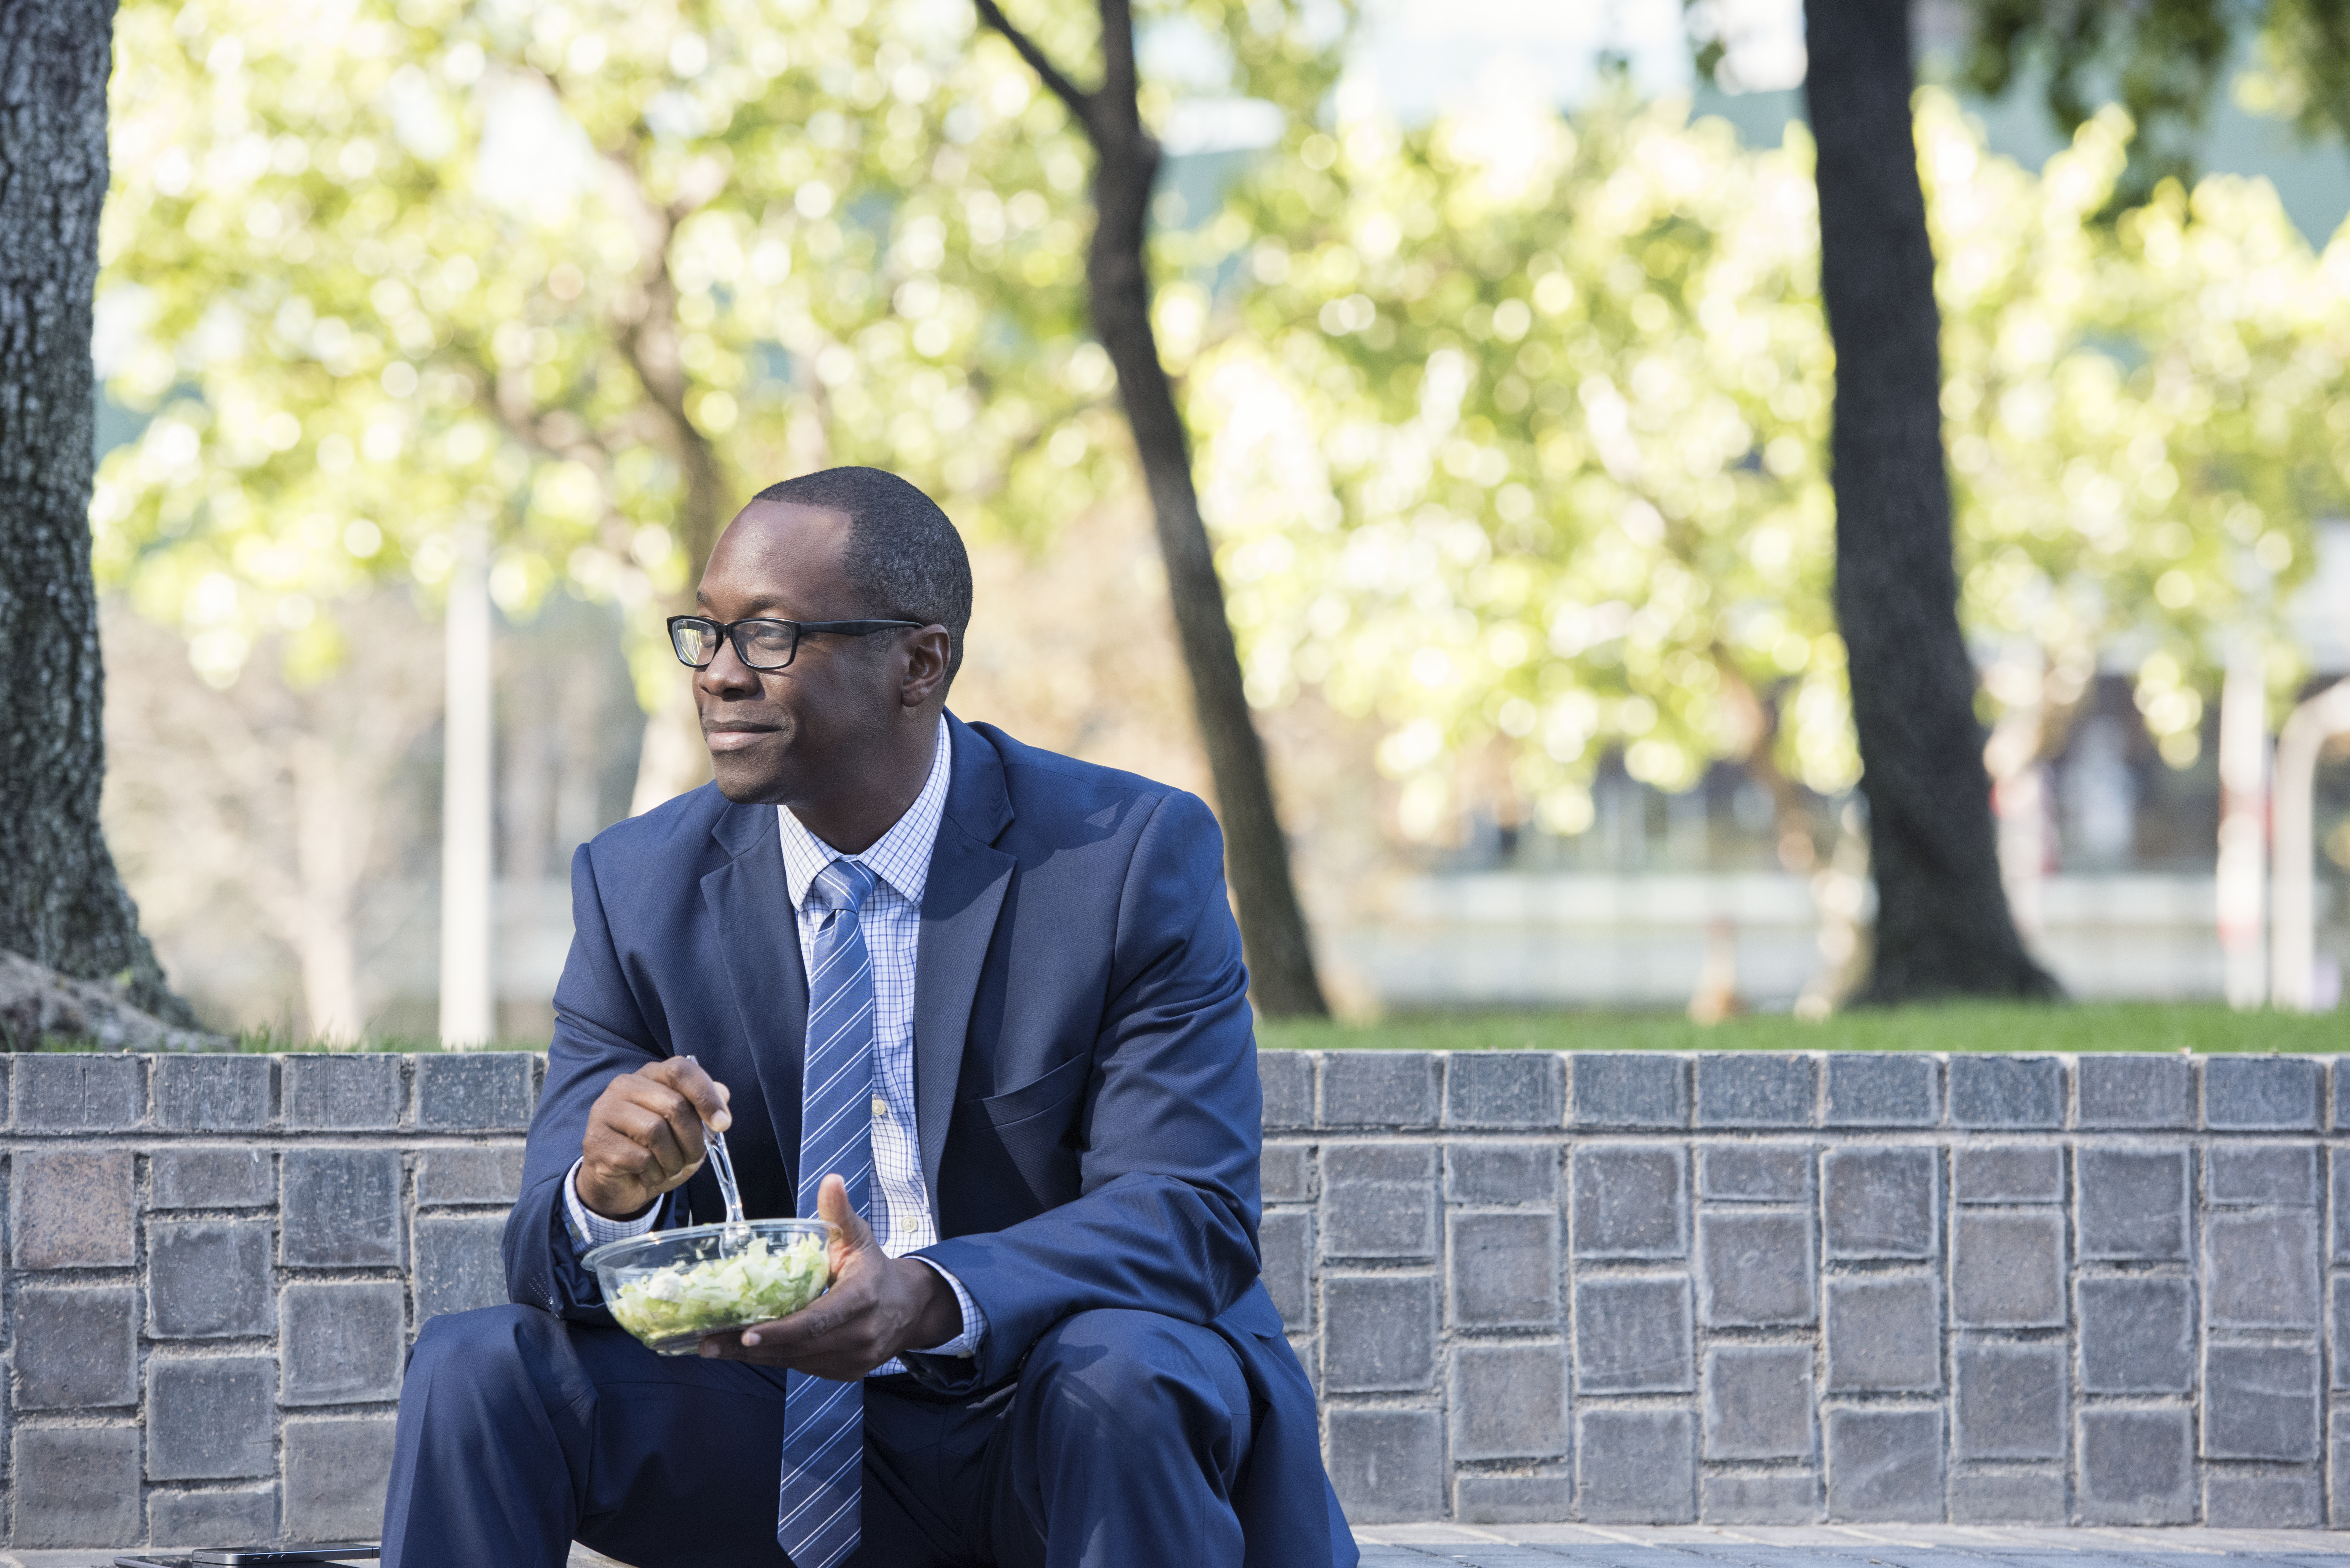 Businessman sitting on outdoor stairs having lunch